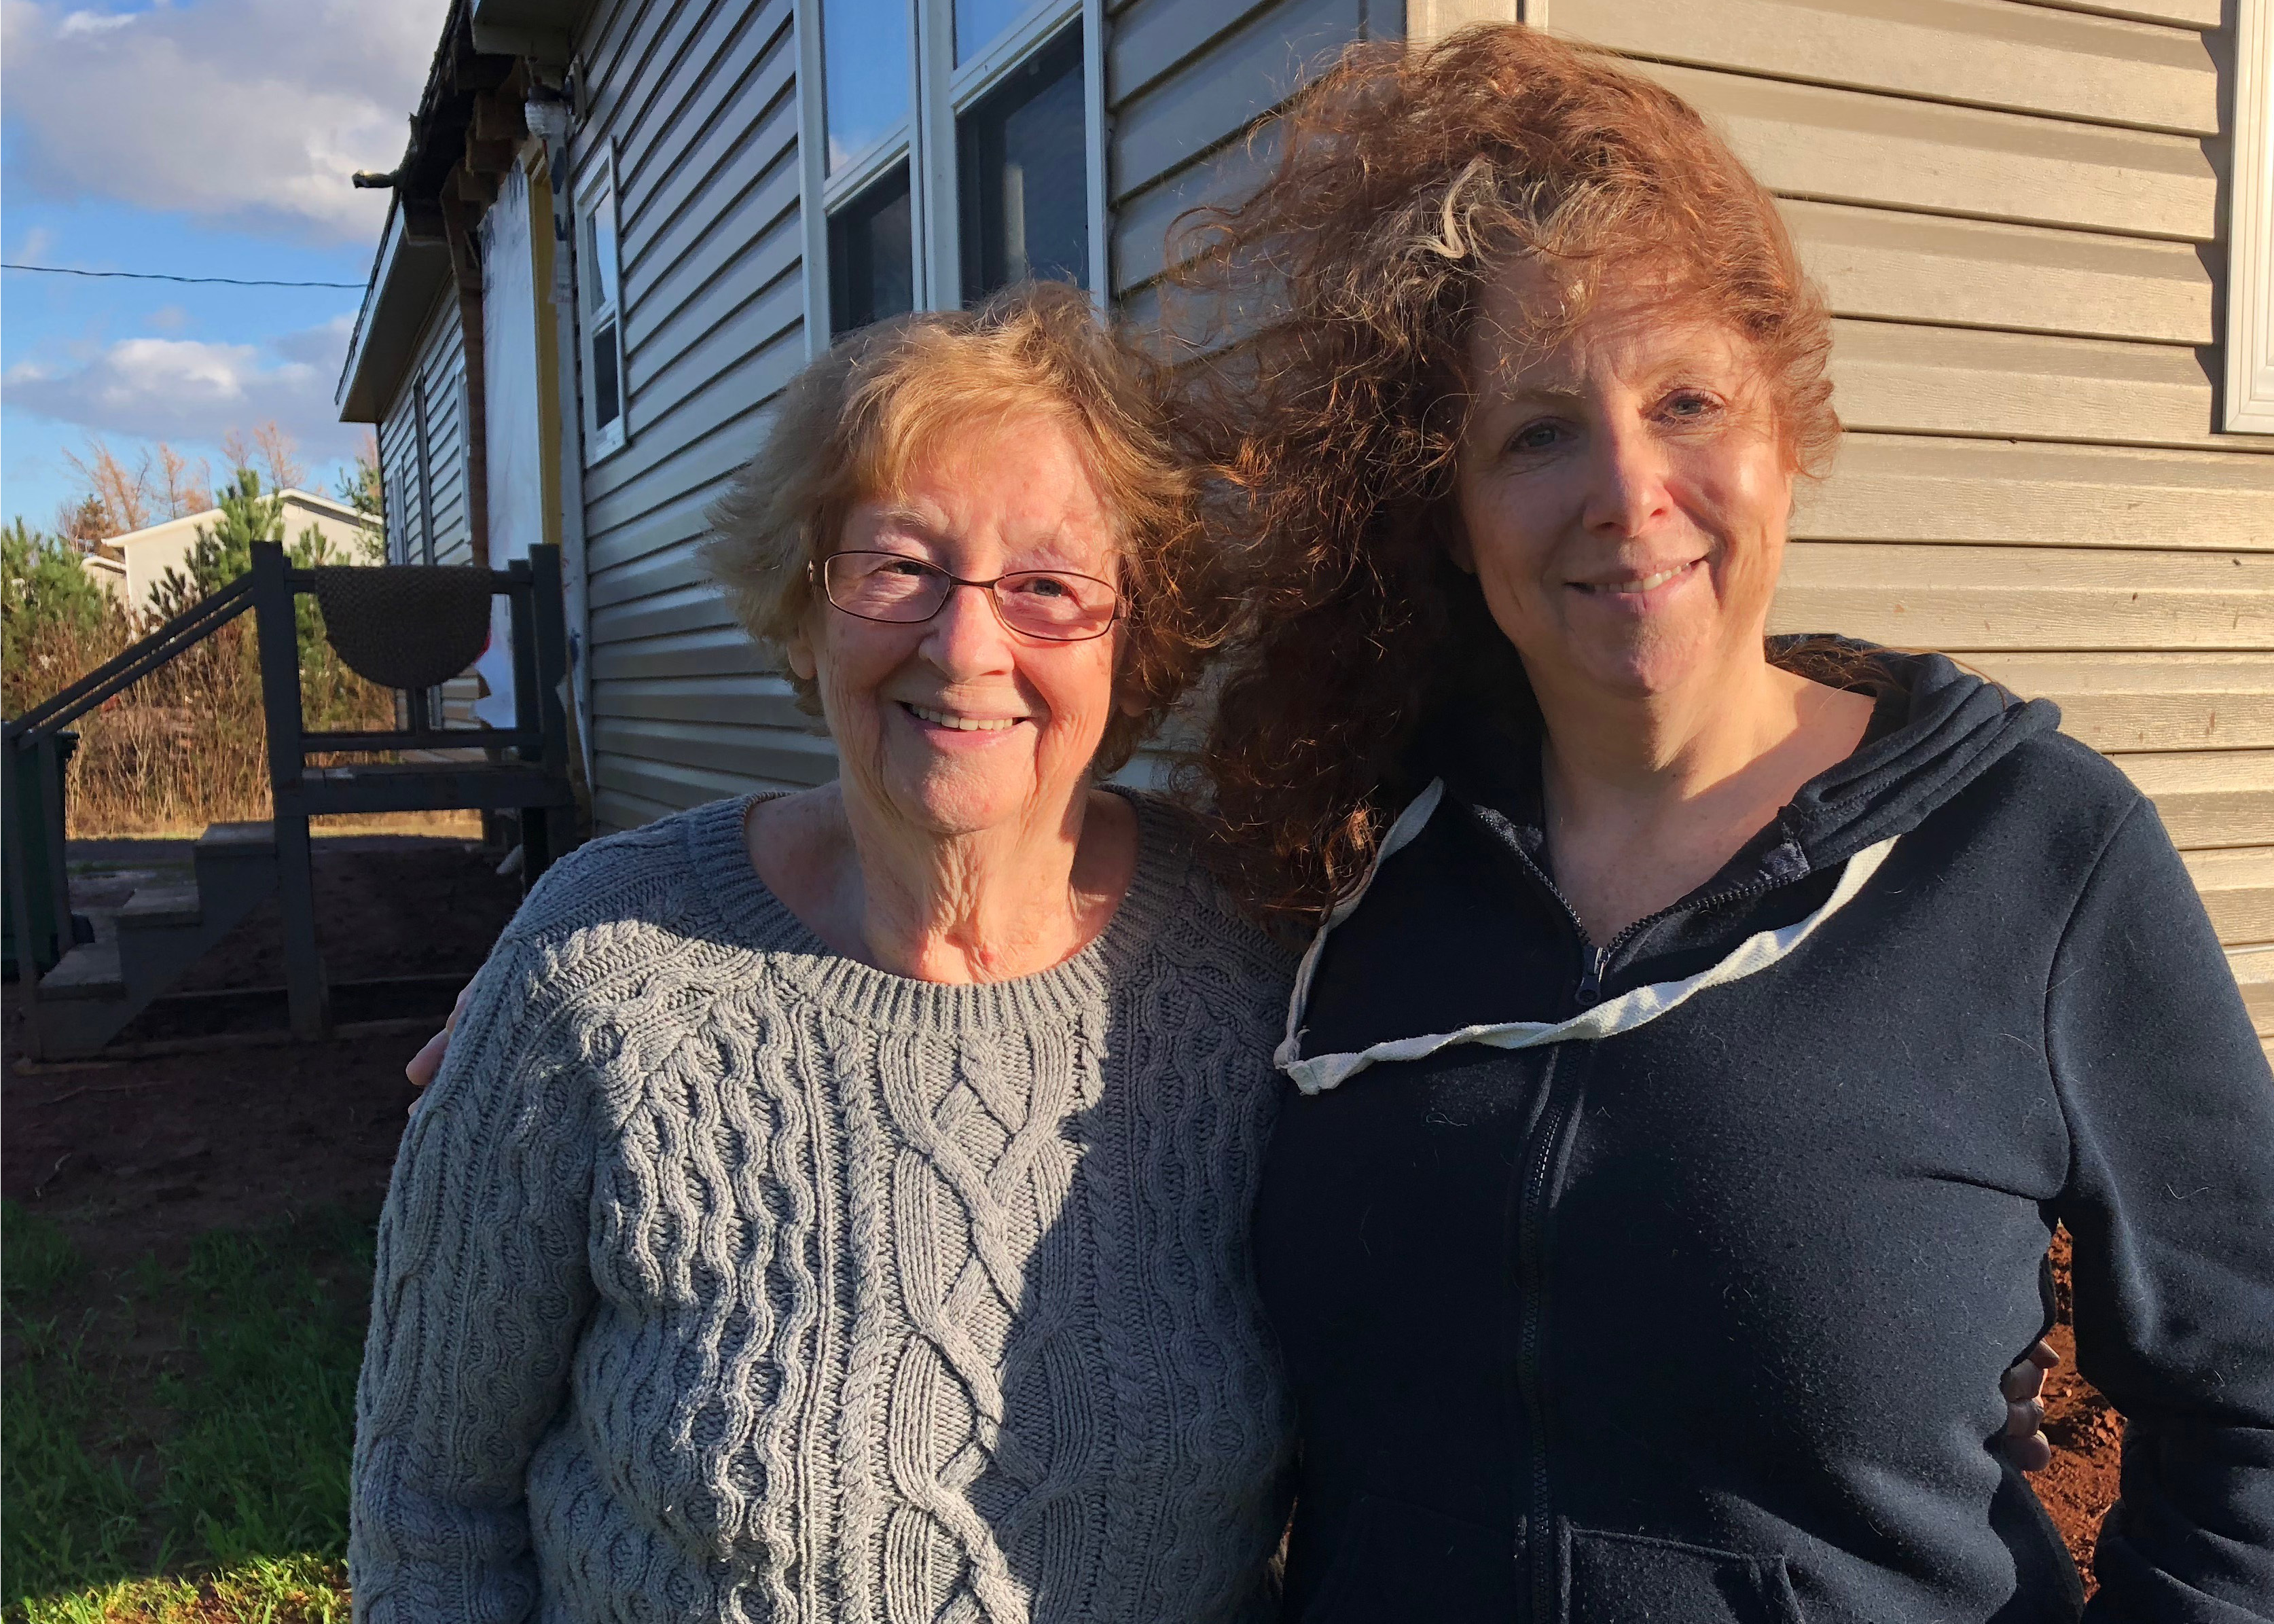 Pam Detlor (right) and her mother Jeannette Detlor outside their trailer which they moved to land just outside Summerside. Jeannette said she would have had to leave it if it wasn't for the help of her daughter. (Laura Meader/CBC)